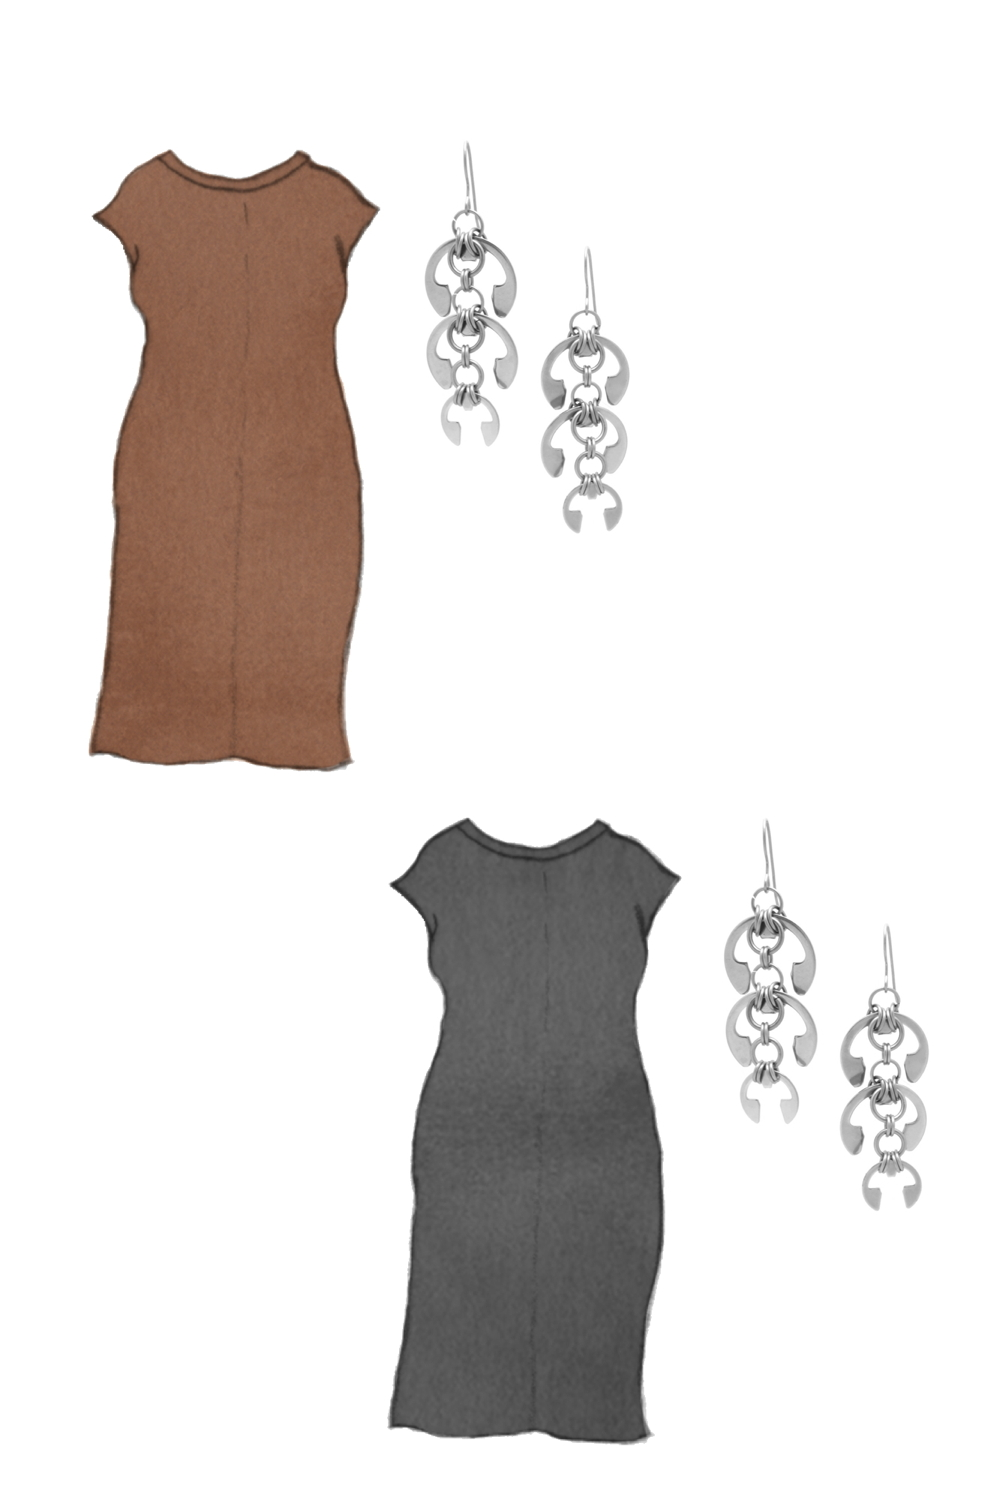 Style sketch of Everlane's Luxe Cotton Side-Slit Tee Dress in black and brown, with Wraptillion's Laburnum Earrings (modern chainmail chandeliers).